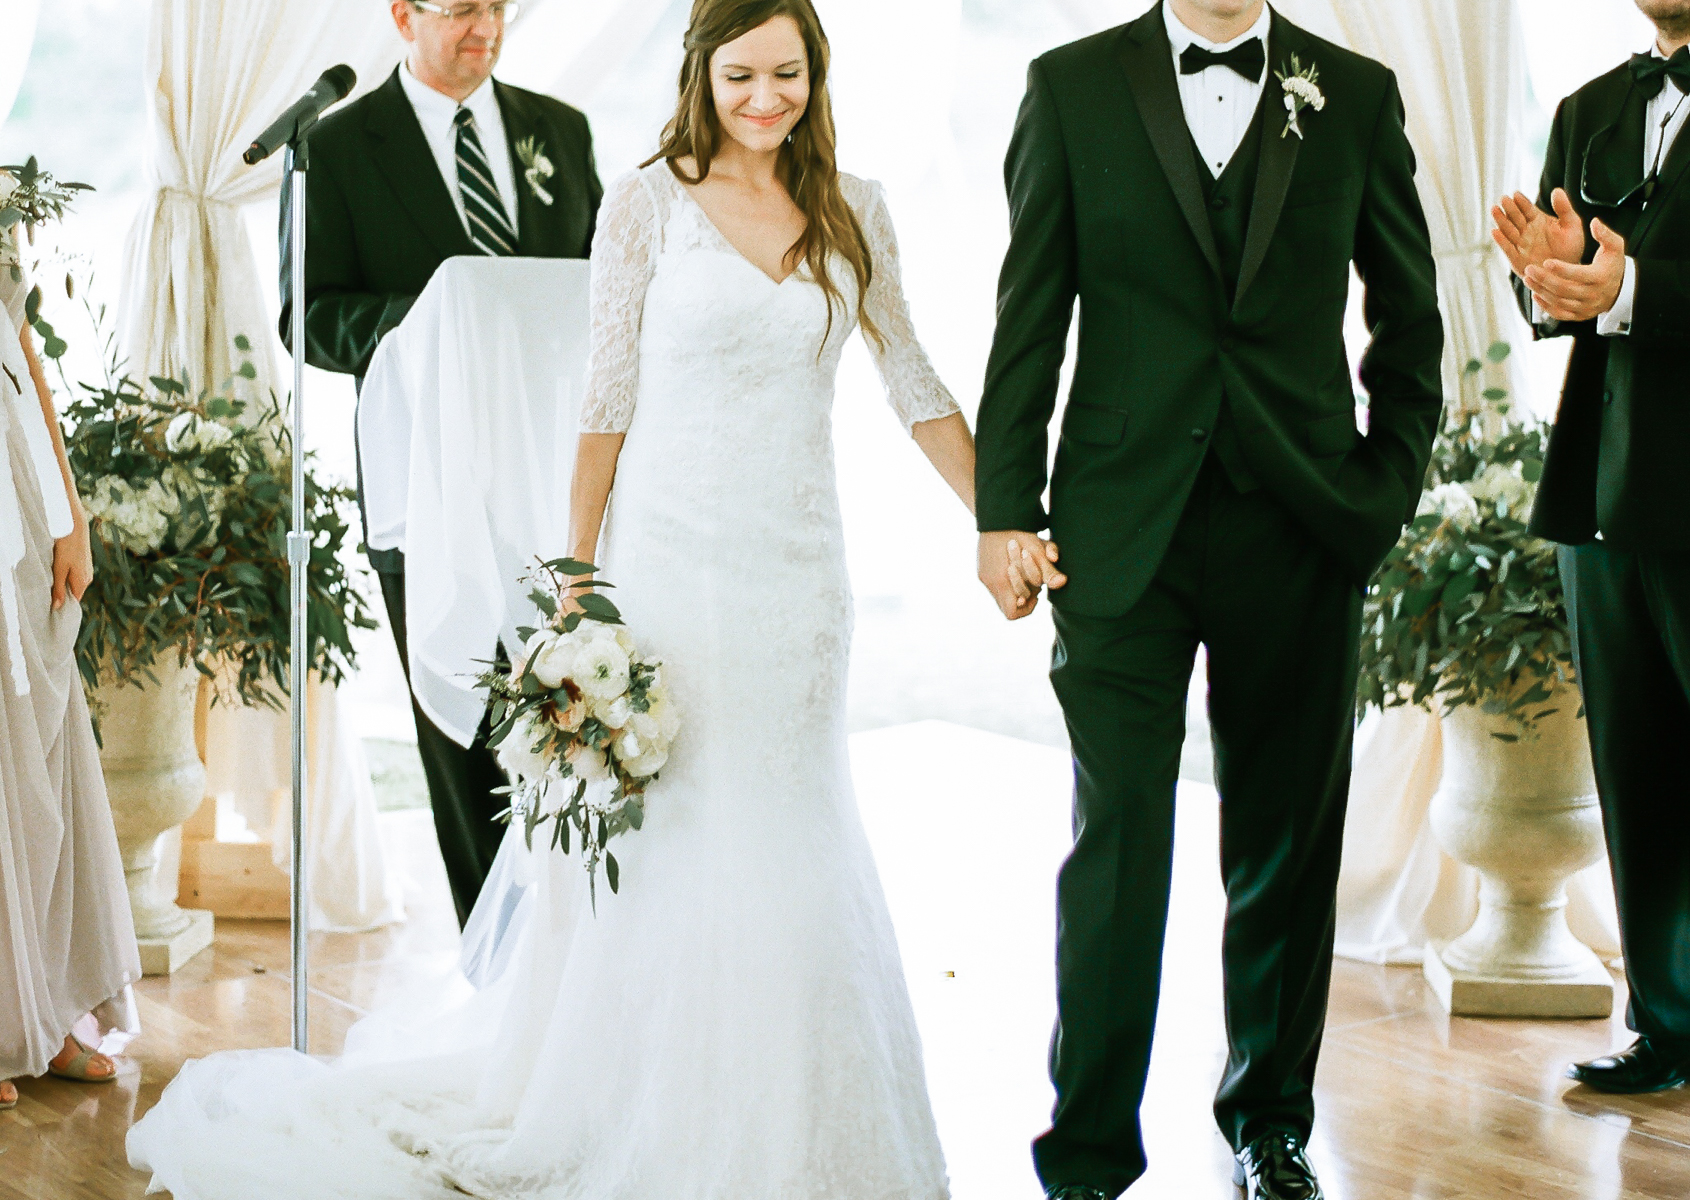 Victoria Austin Designs | Fine Art Crestview Florida Wedding | Jennifer Blair Photography